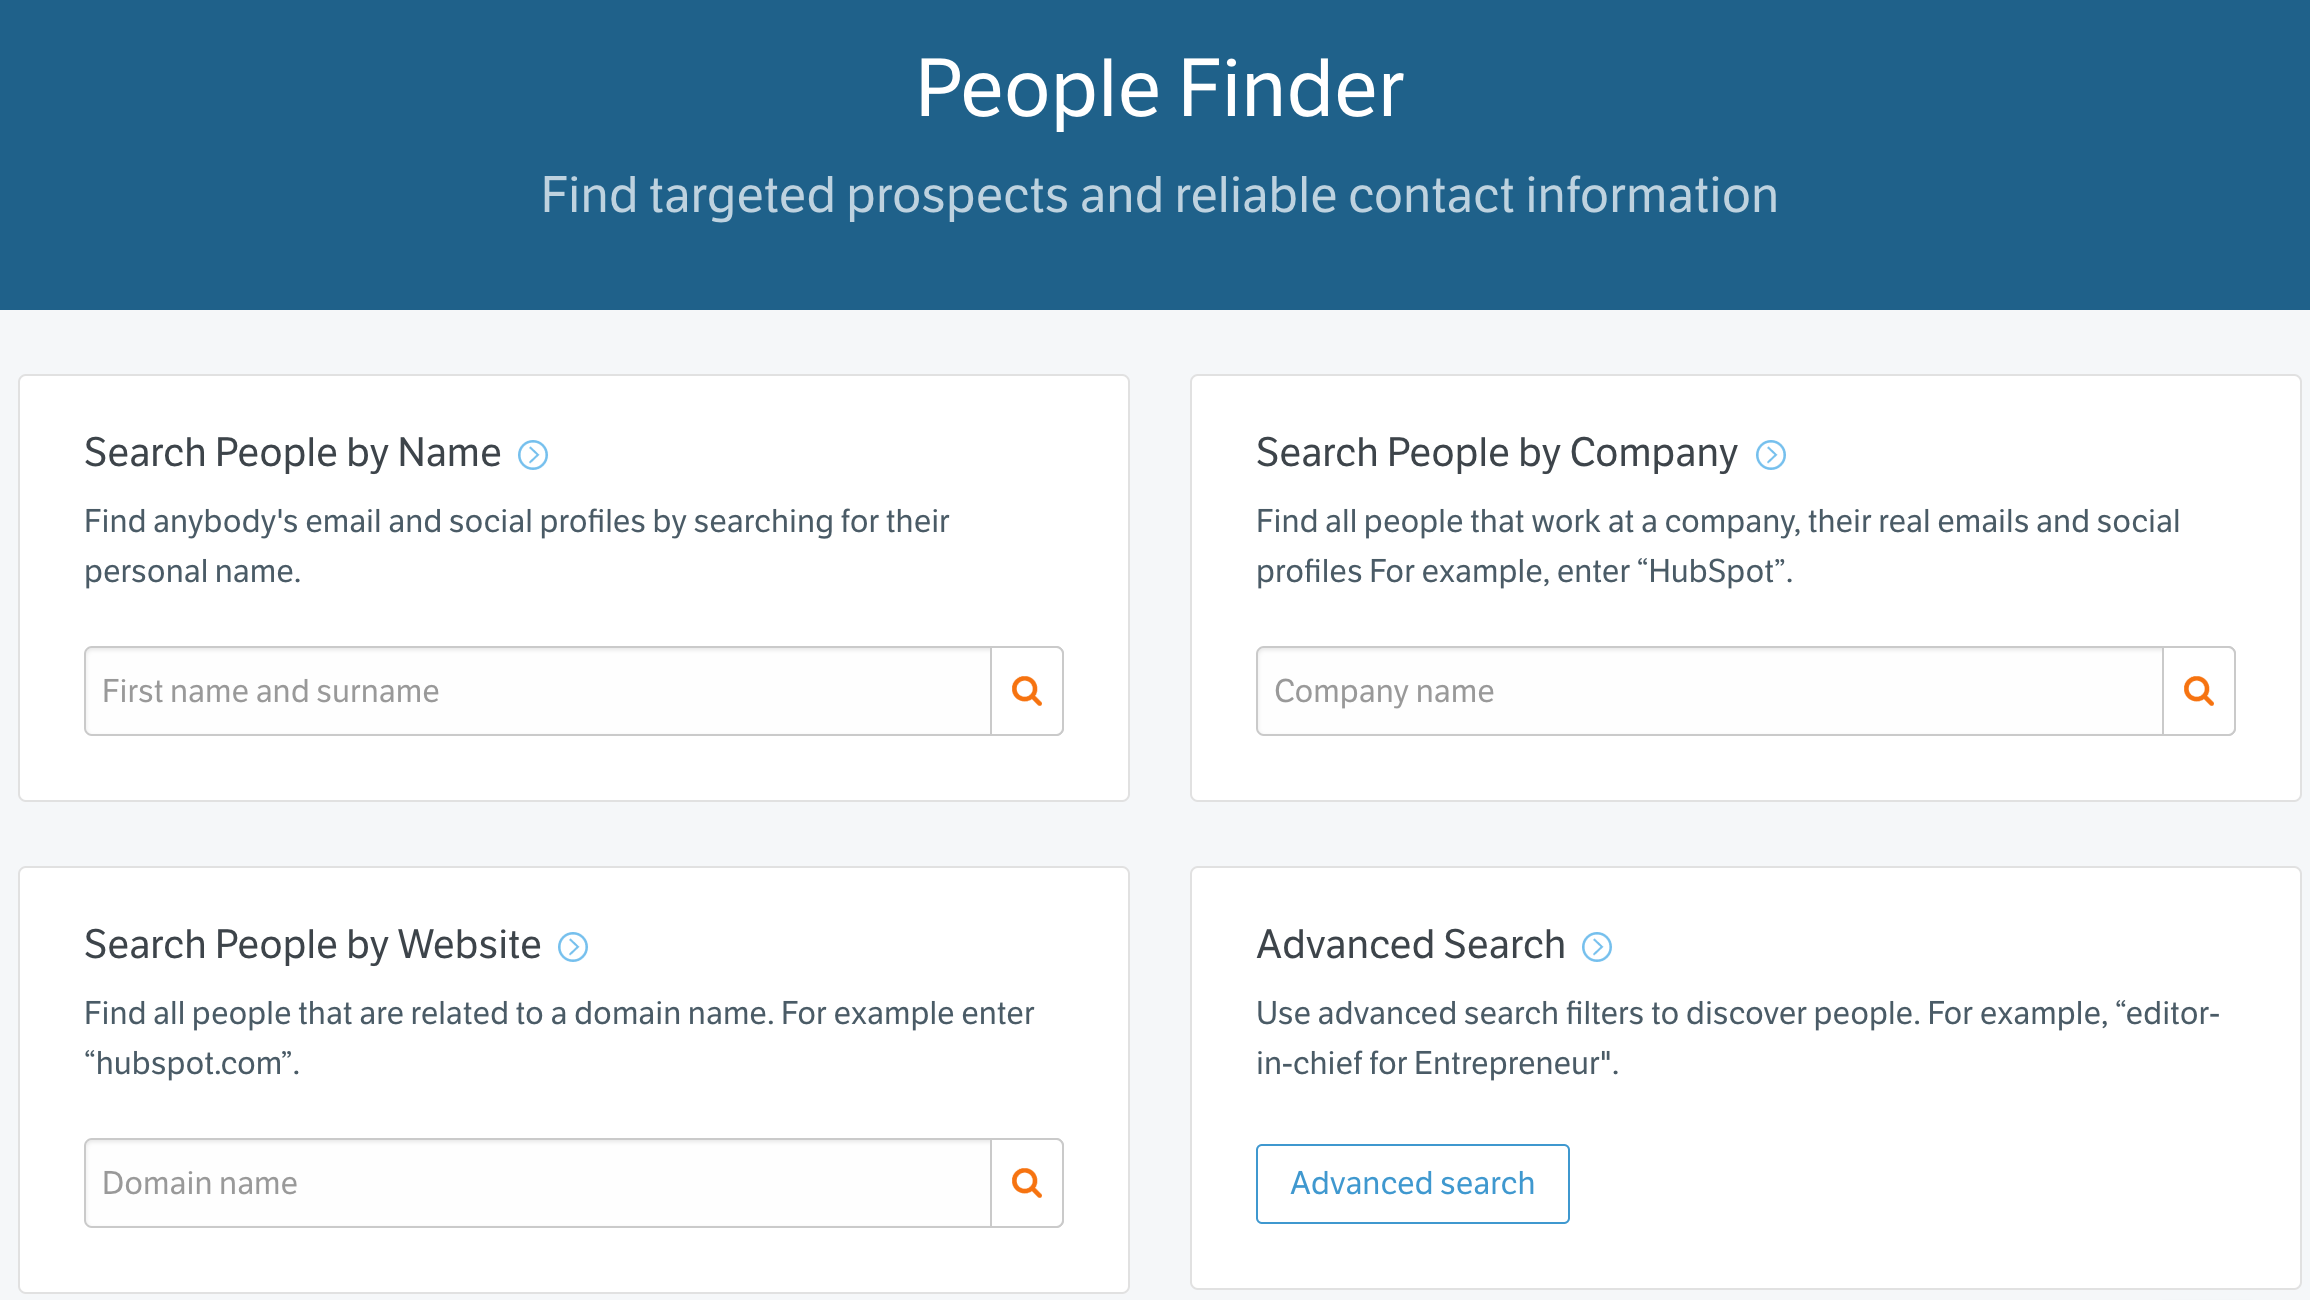 The Complete Guide To Finding Any Email Address: Tools, Tips ...